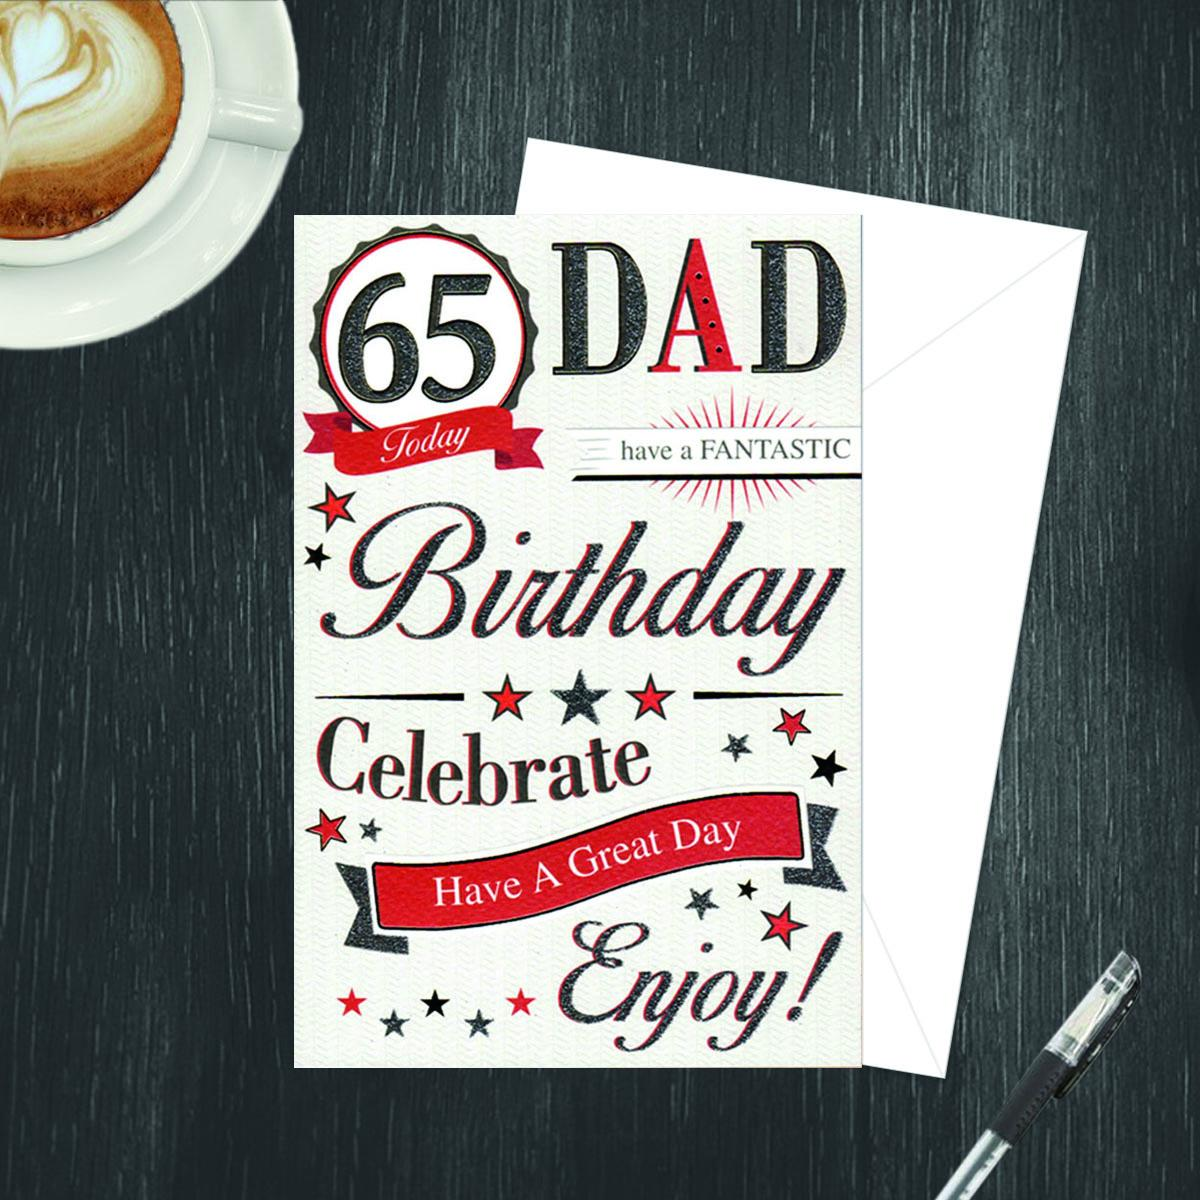 Inside Of Dad 65th Card Showing Printed Text